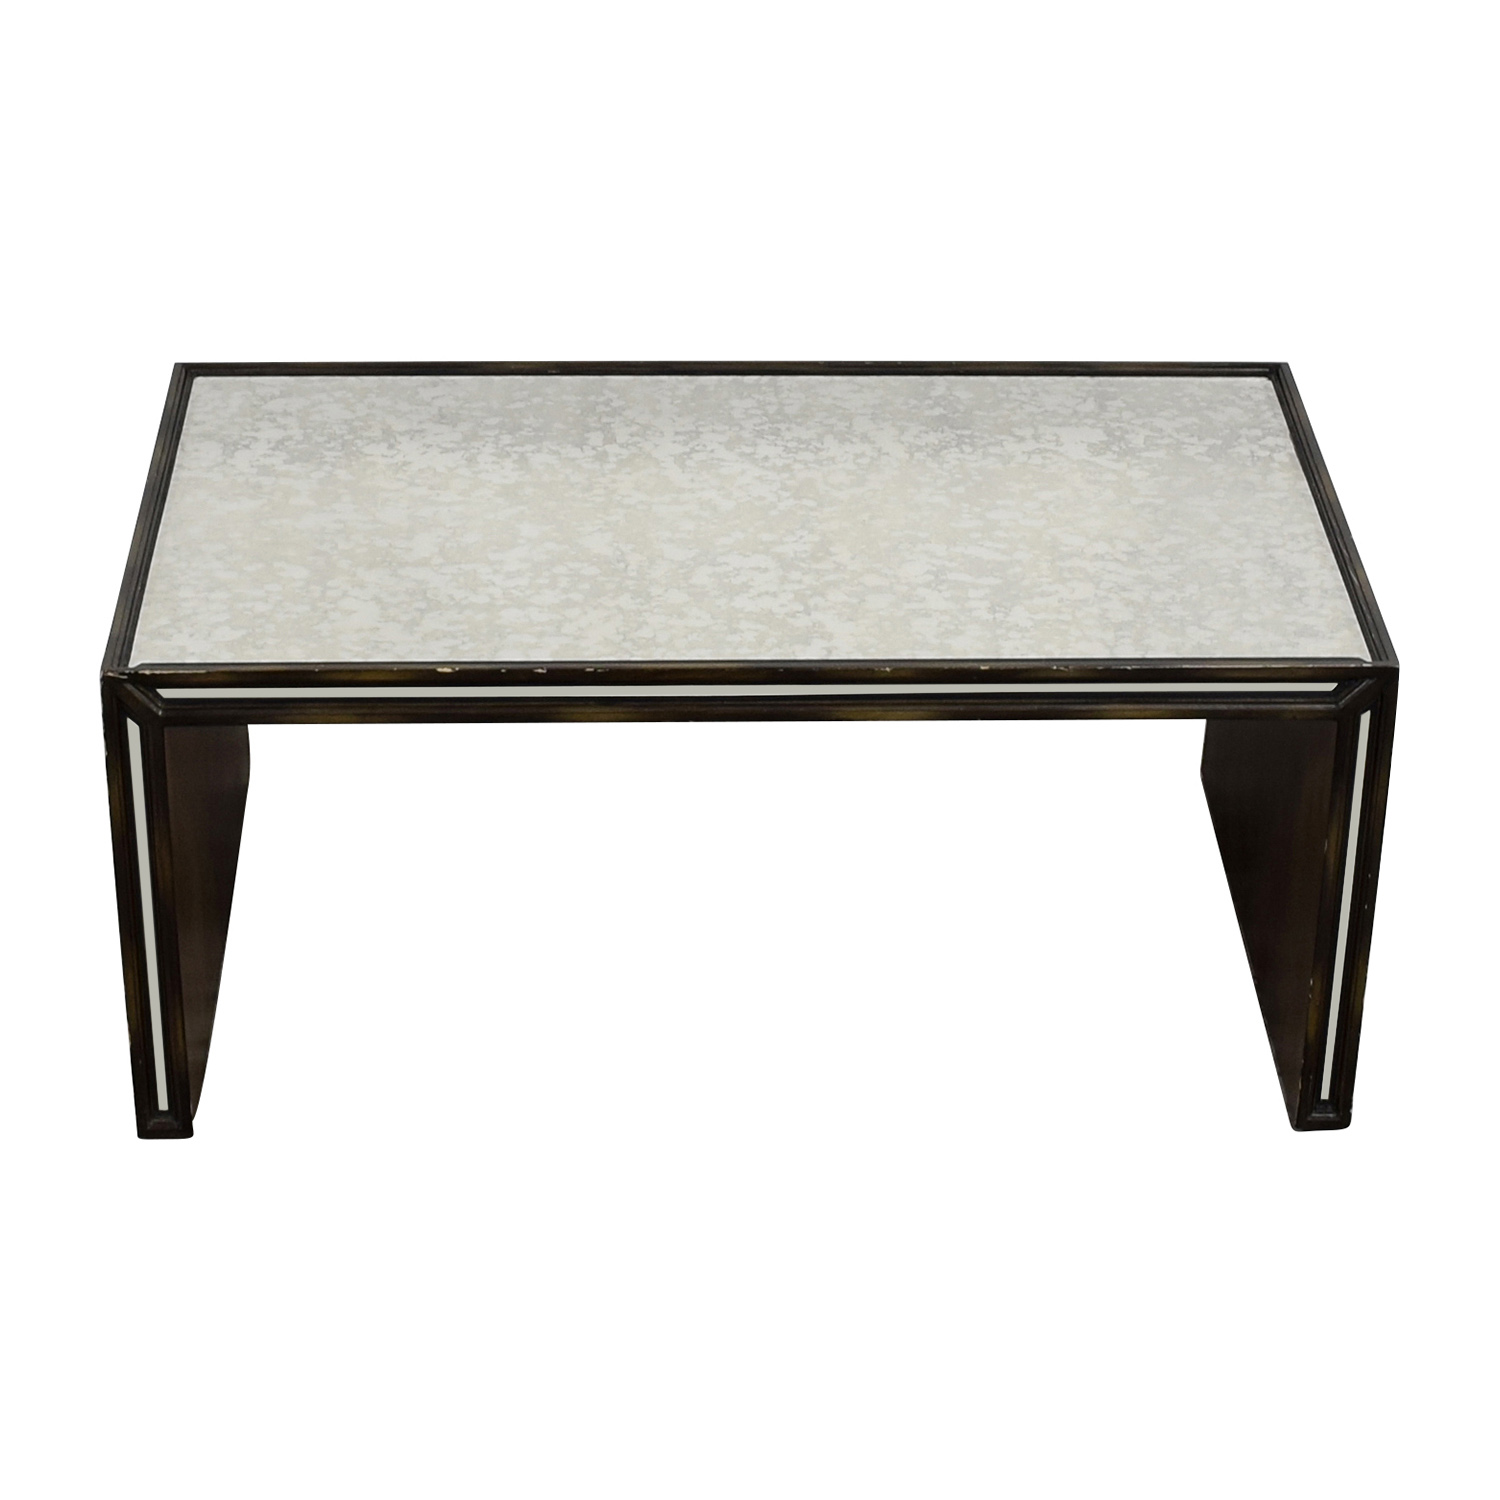 Arhaus Furniture Mirrored Coffee Table Tables